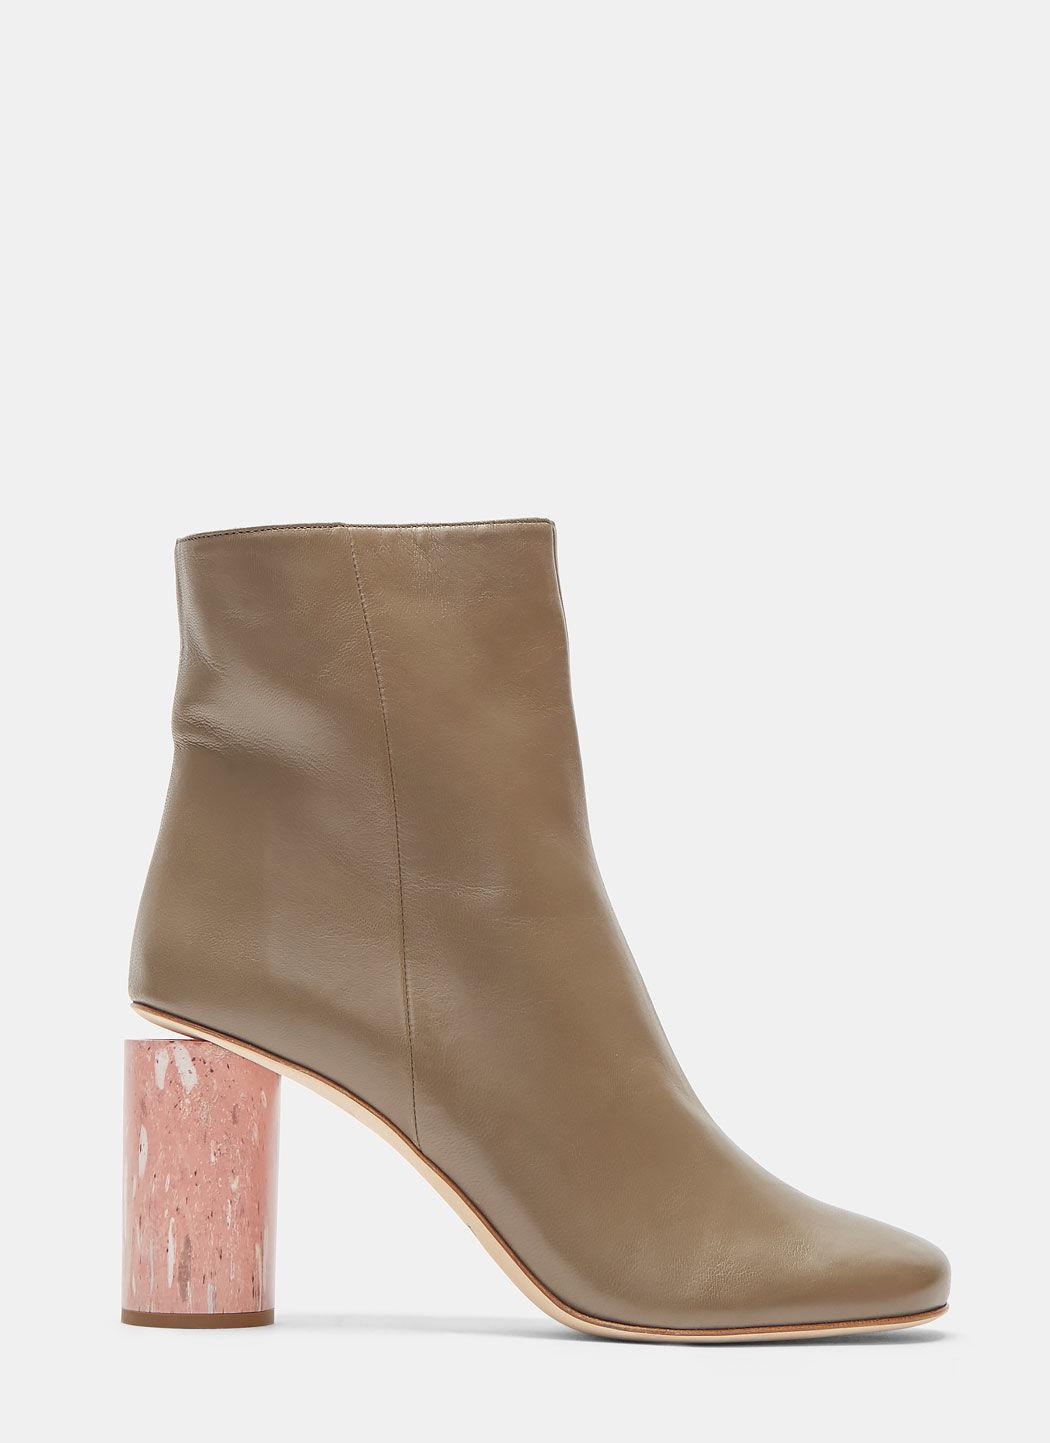 Acne Althea Marble Cylinder Heeled Boots vKr9N